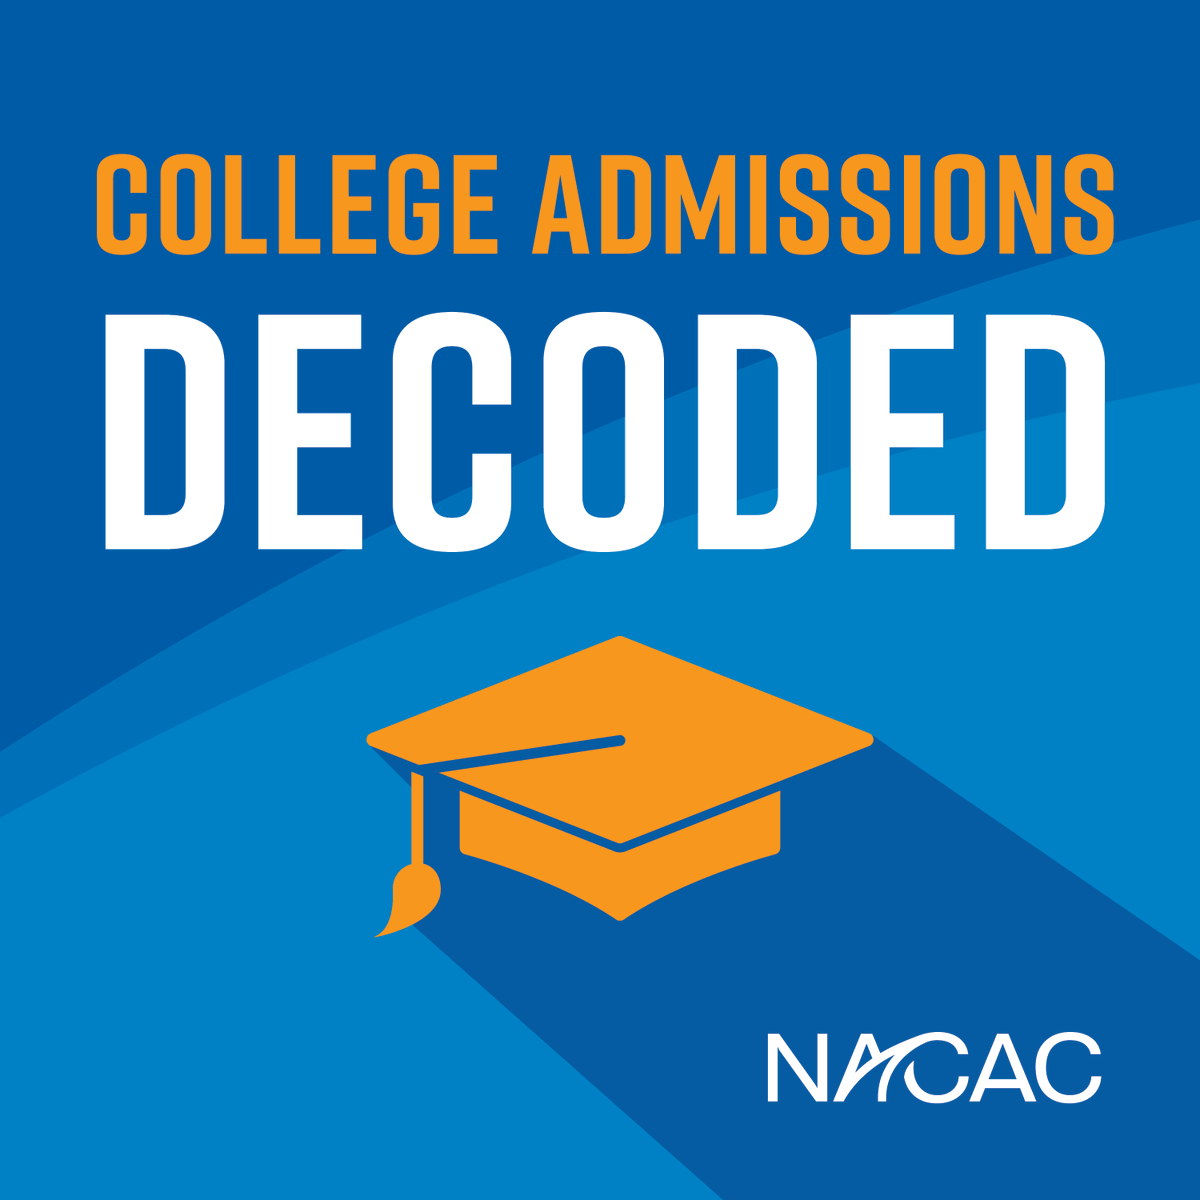 A new episode of our College Admissions Decoded podcast is available now! Listen to Episode 9: Understanding Financial Aid Award Letters online and on @ApplePodcasts http://ow.ly/ikVb50z101ypic.twitter.com/FYVnCd1cxN